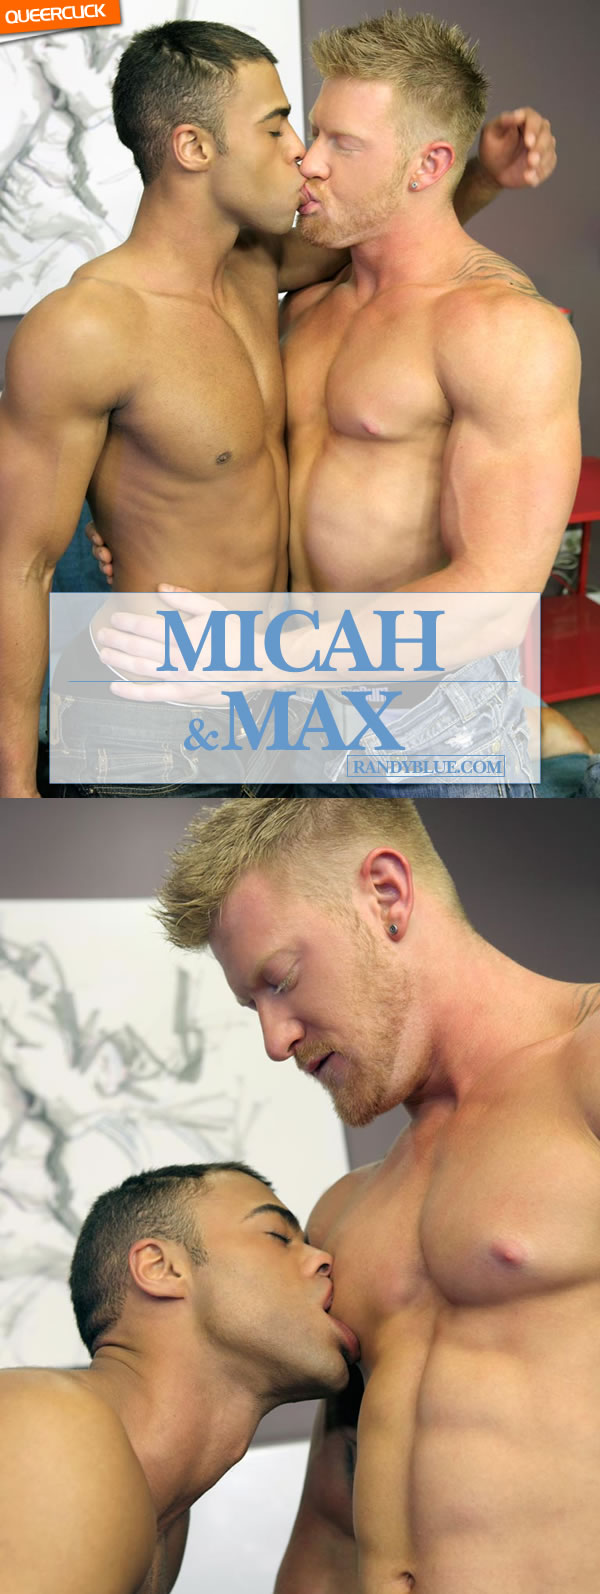 Randy Blue: Max & Micah